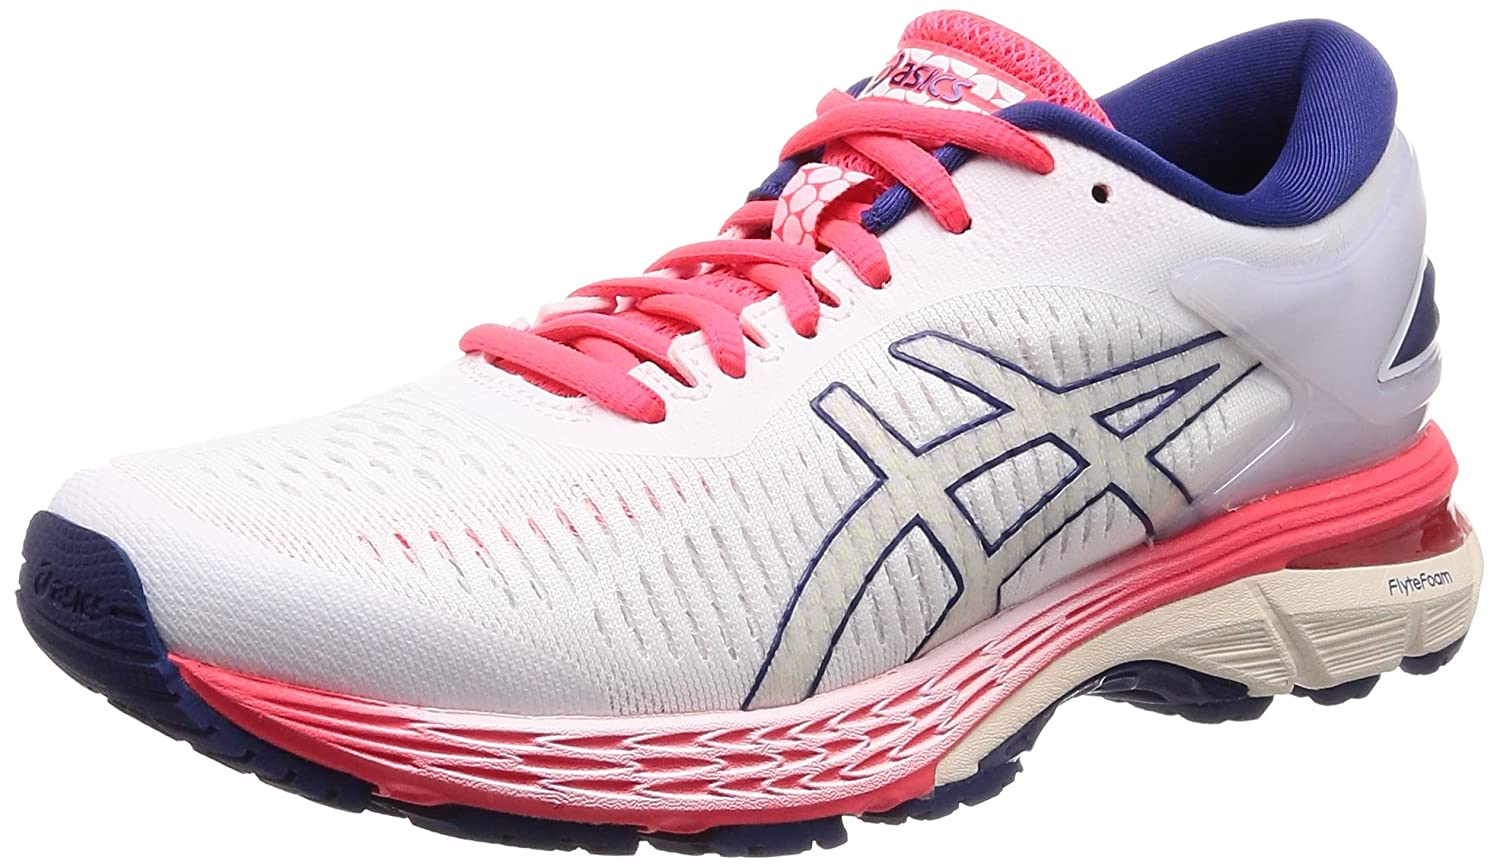 ASICS Gel-Kayano 25 Men's Running Shoe B077MRR6Z7 10 B(M) US|White/White